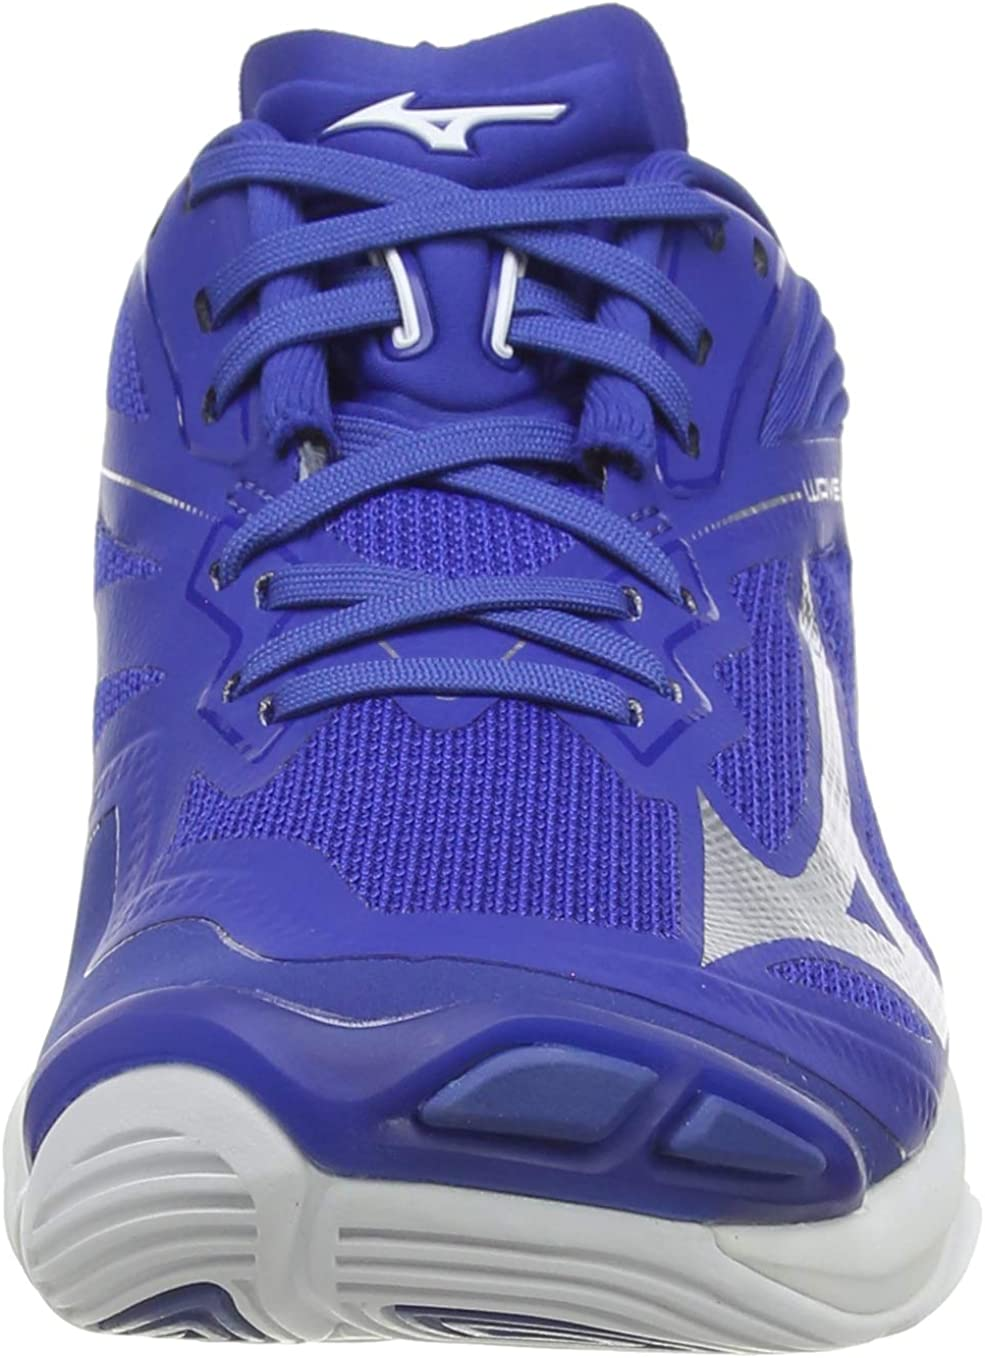 Mizuno Womens Wave Lightning Z6 Volleyball Shoes